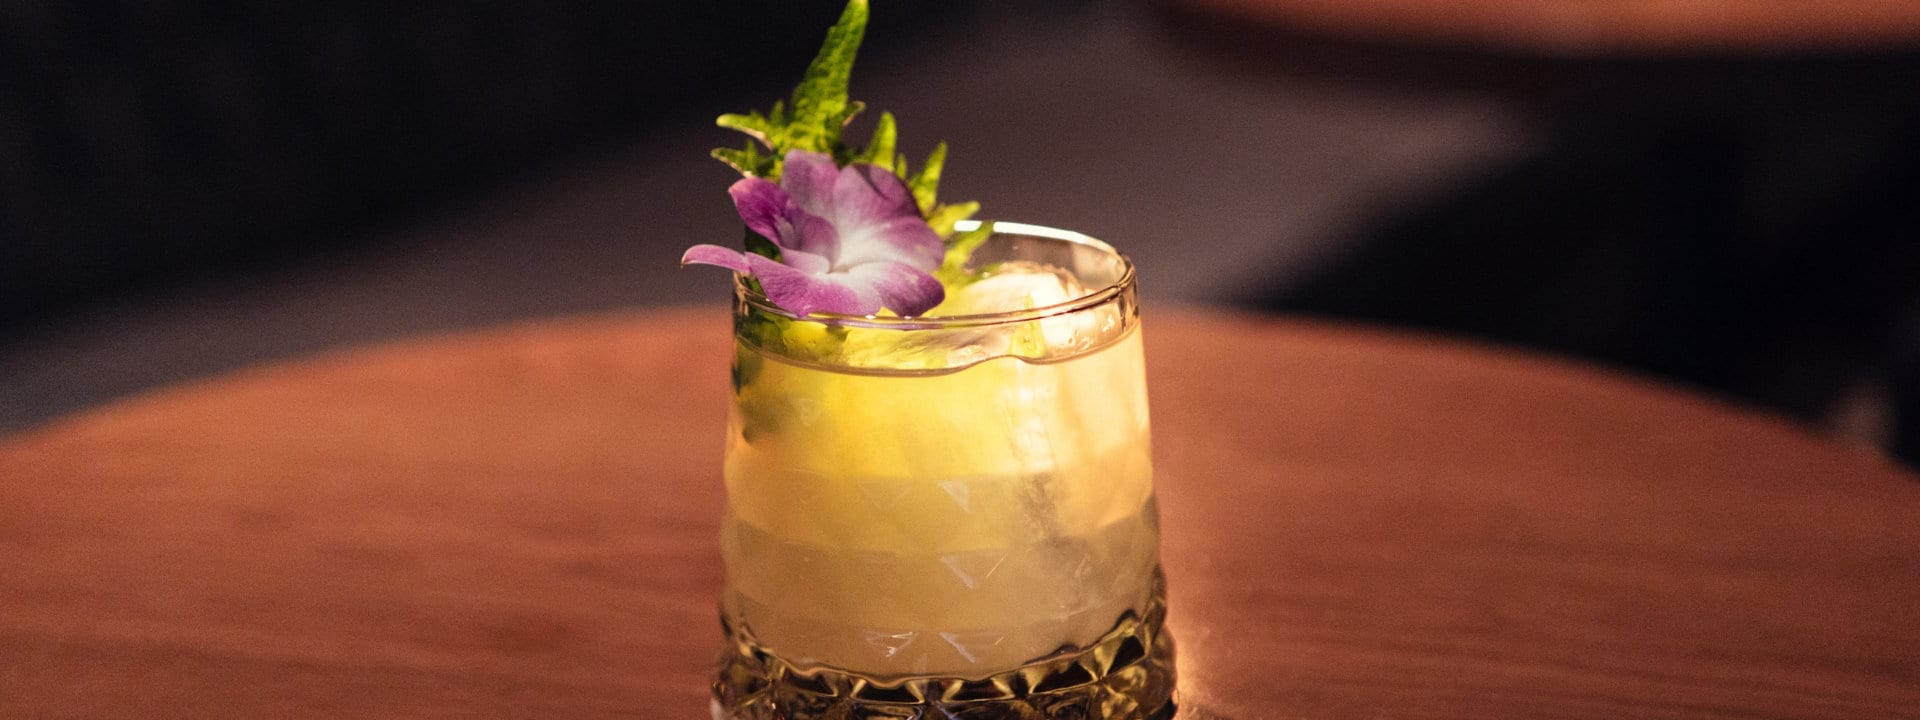 The Punch Room's famous Milk Punch cocktail